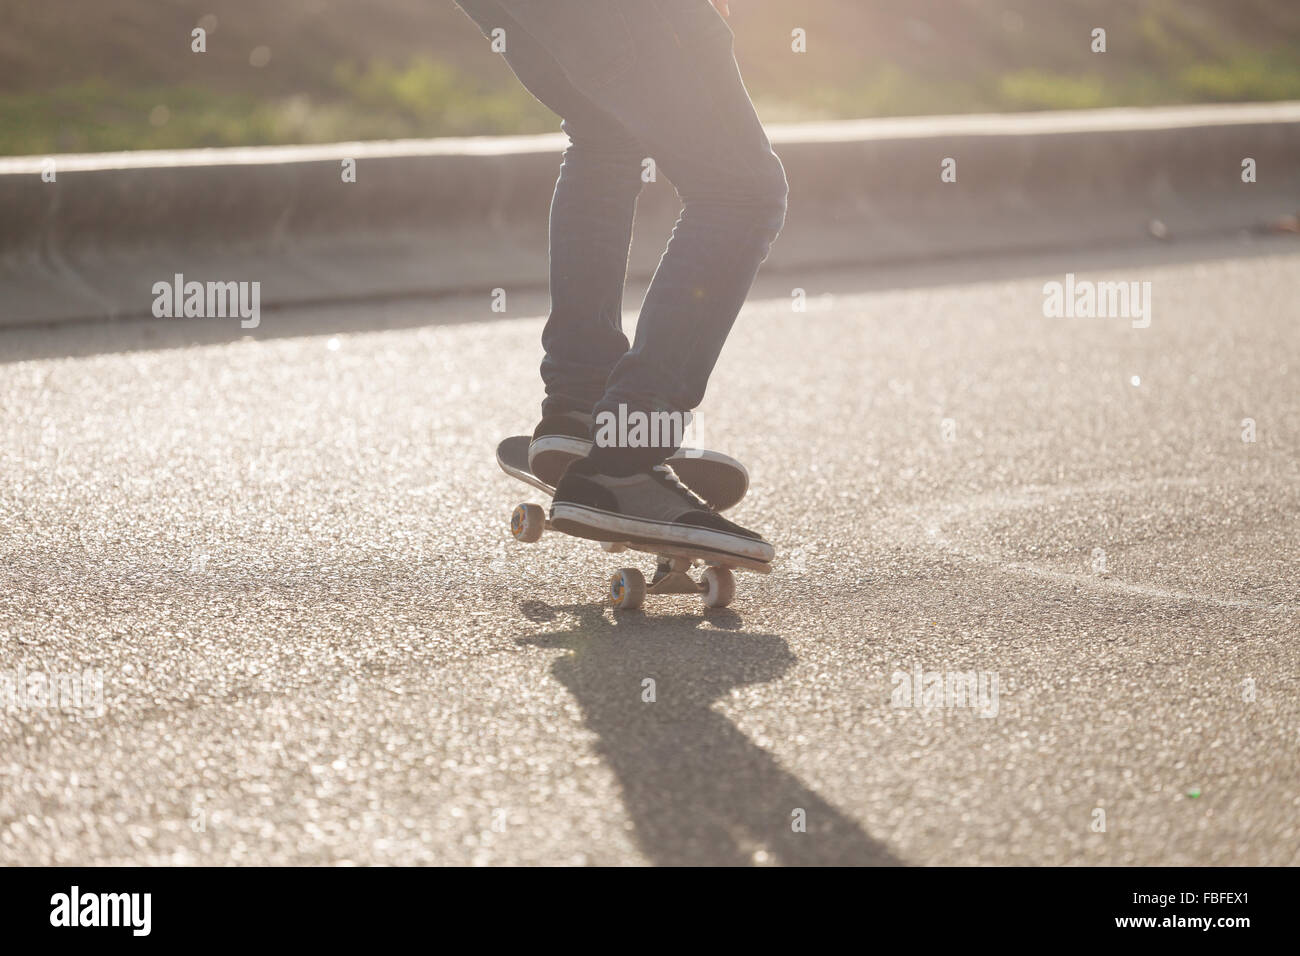 Low Section Of Man Skateboarding On Sunny Day - Stock Image